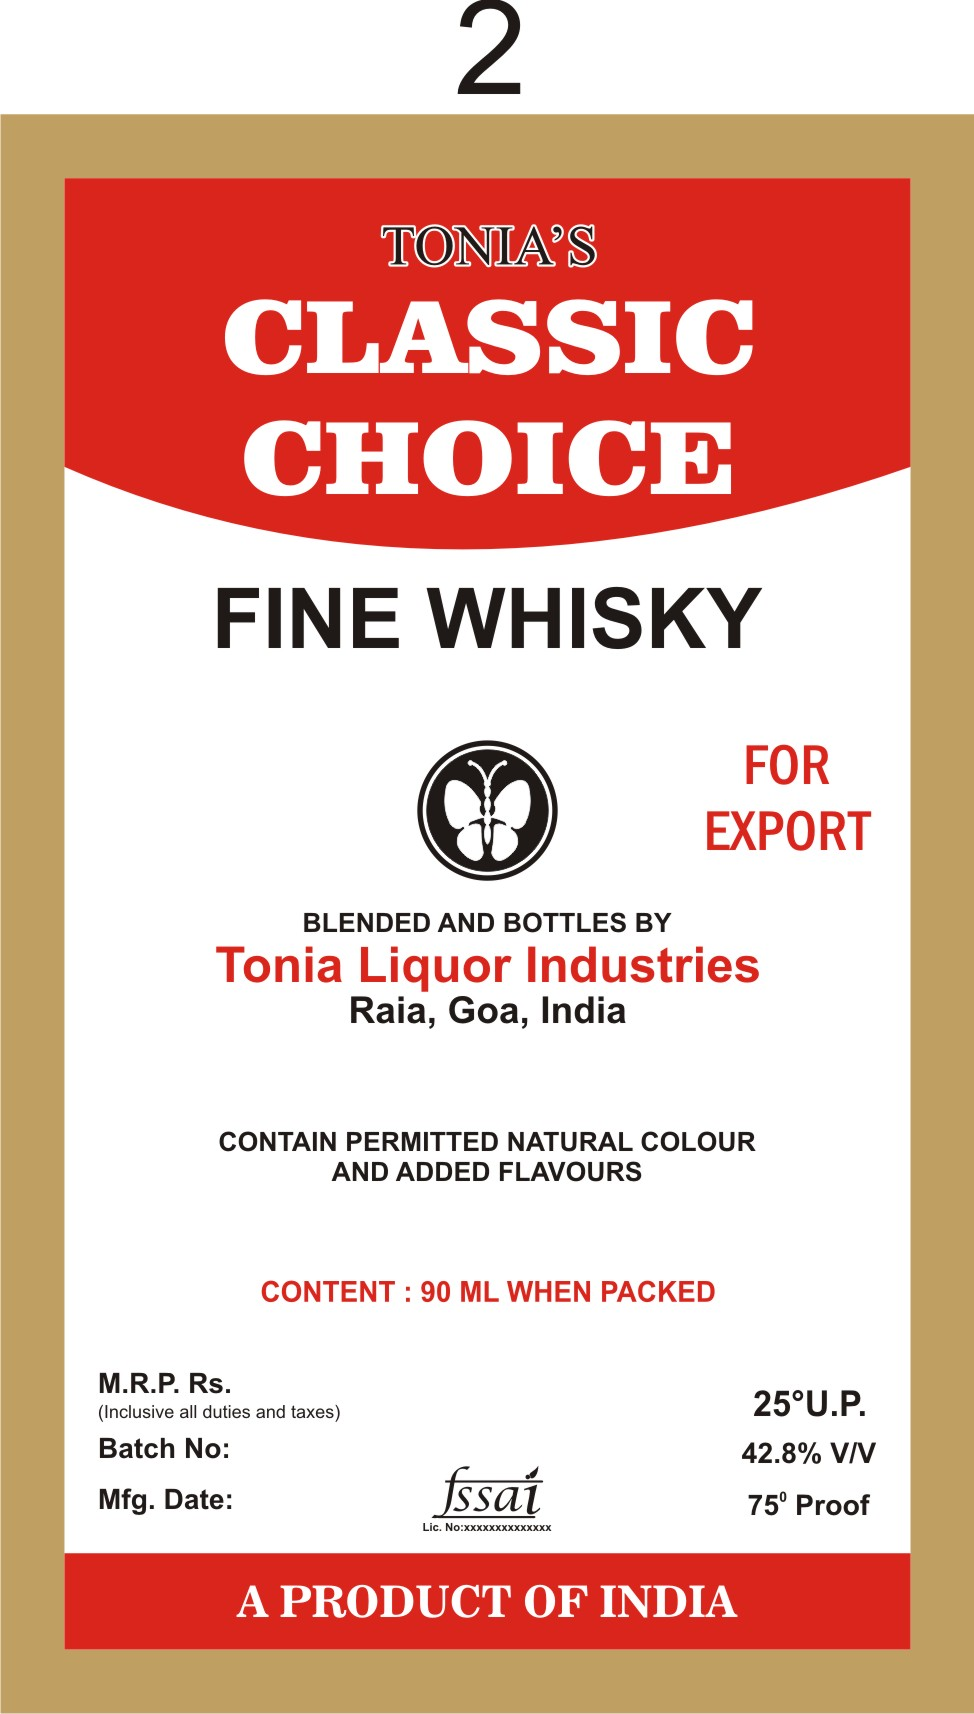 Tonia's Classic Choice Fine Whisky